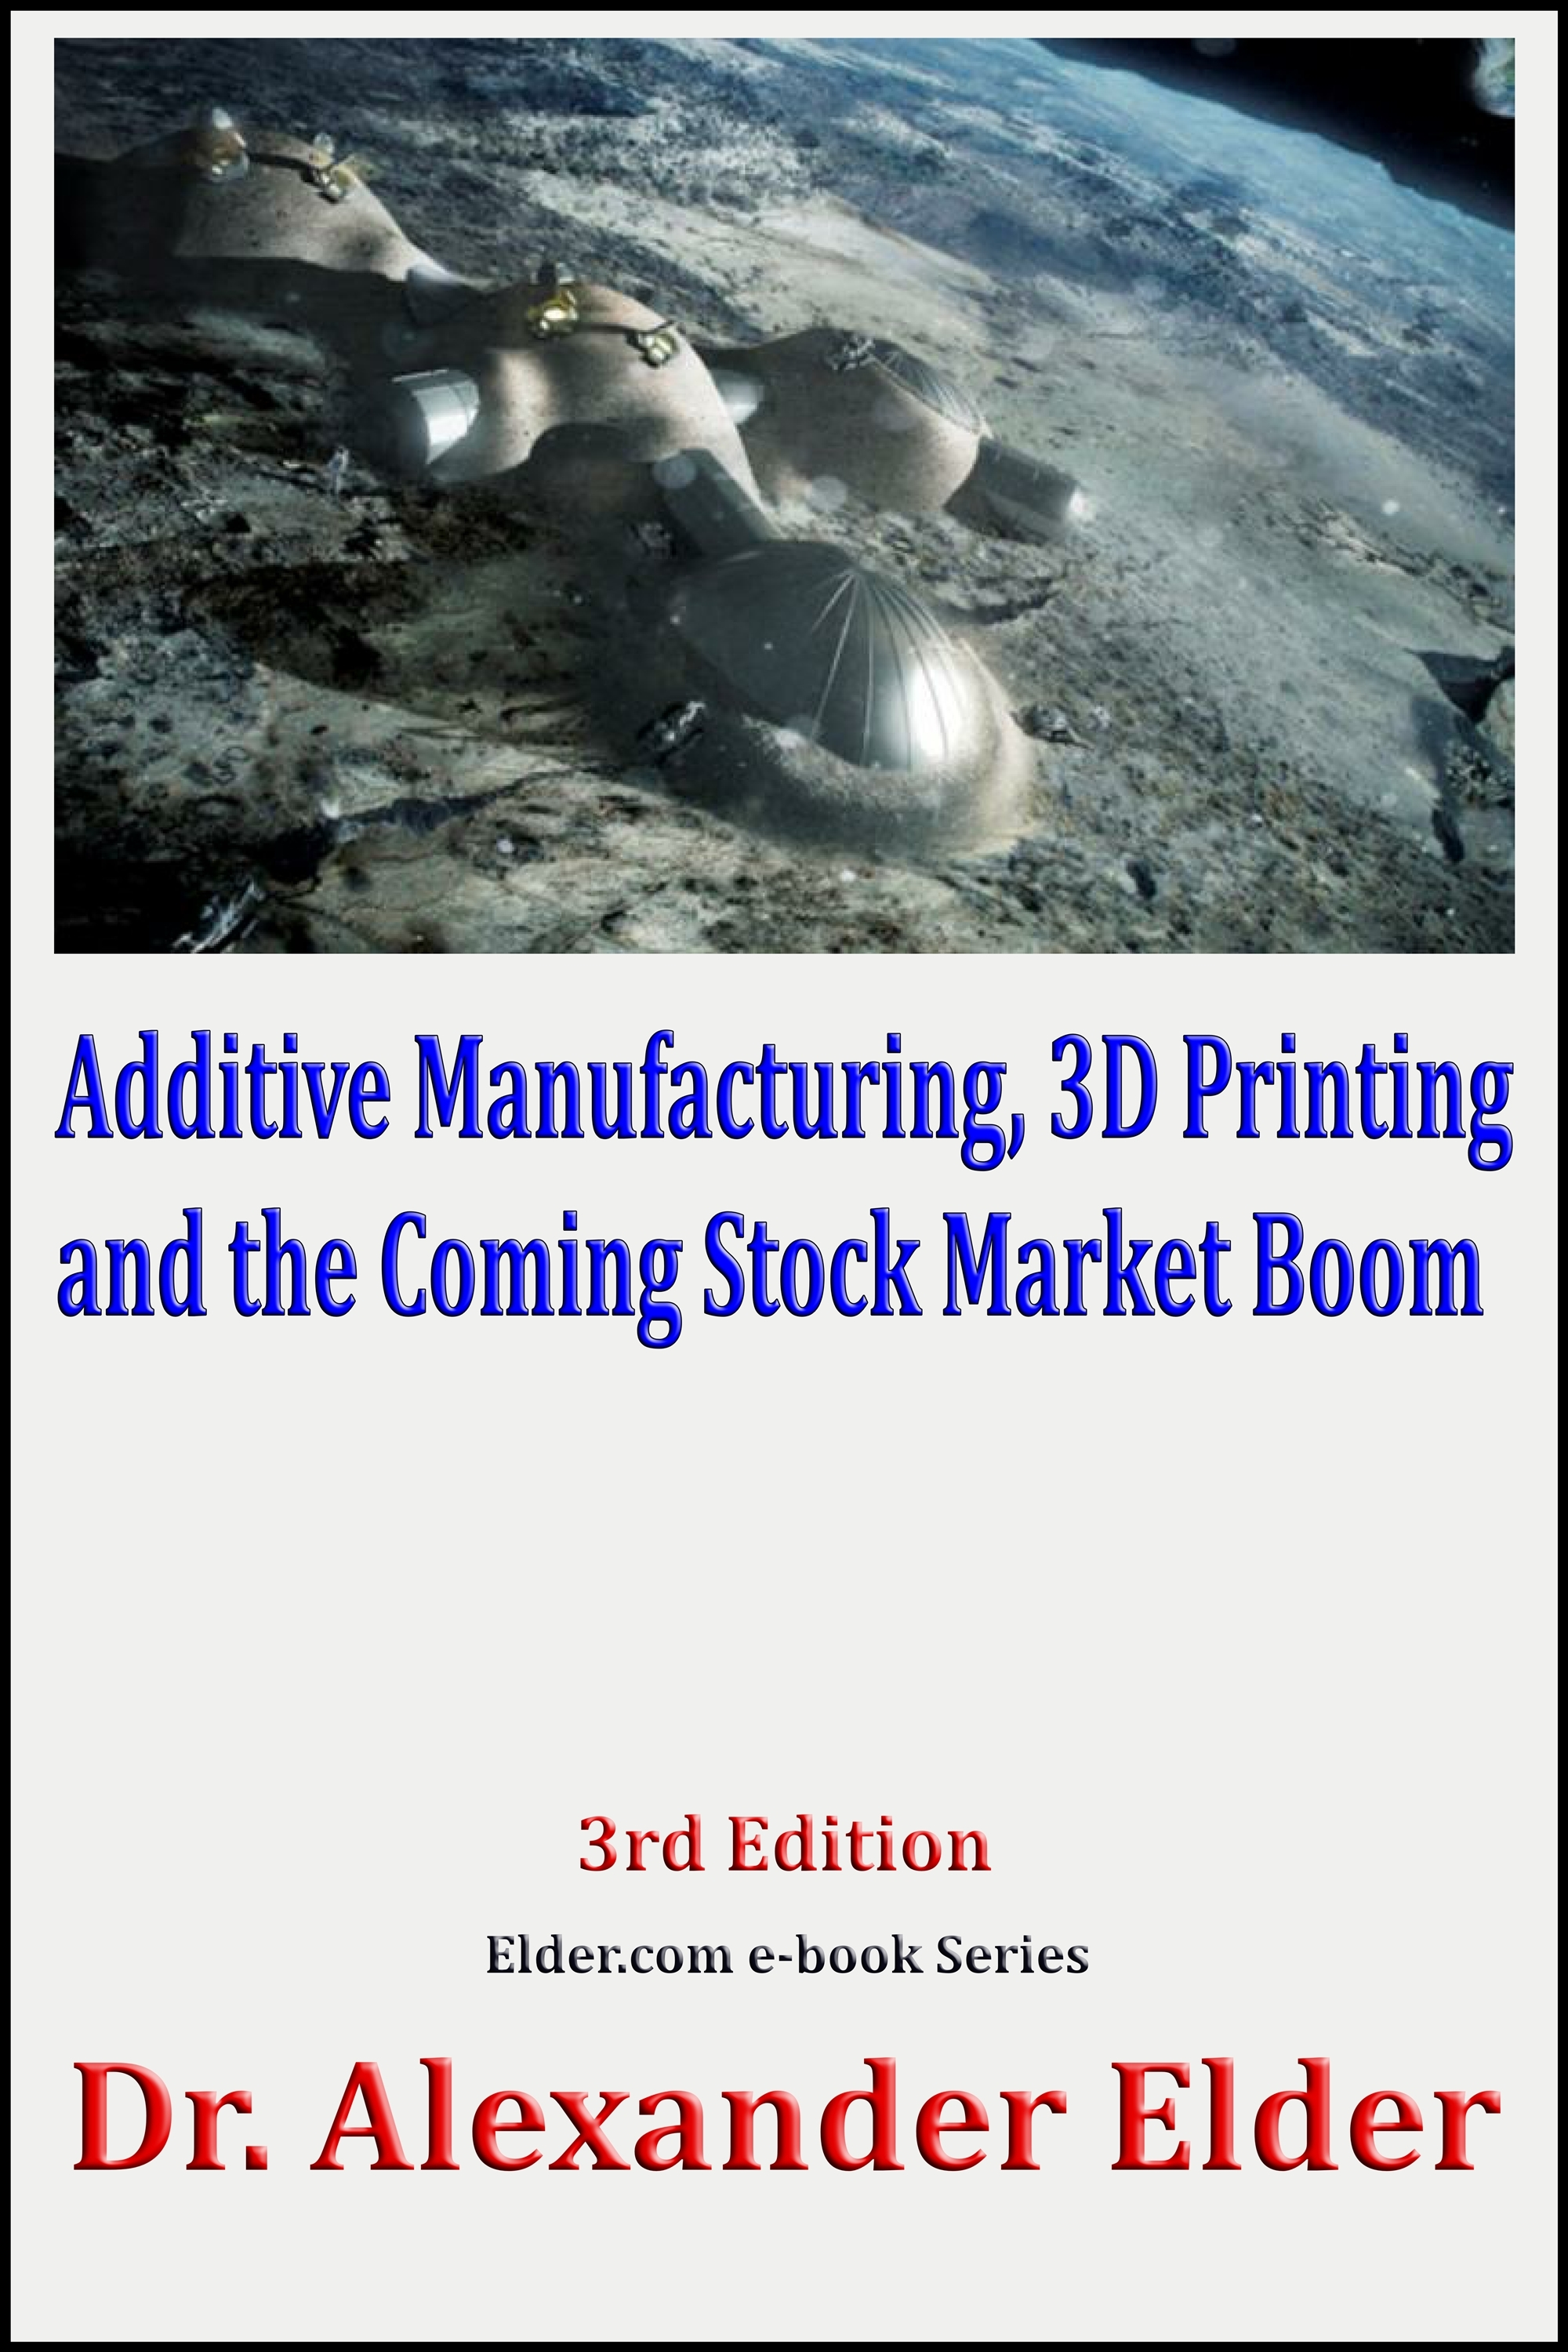 Additive Manufacturing, 3D Printing, and the Coming Stock Market Boom By: Dr Alexander Elder